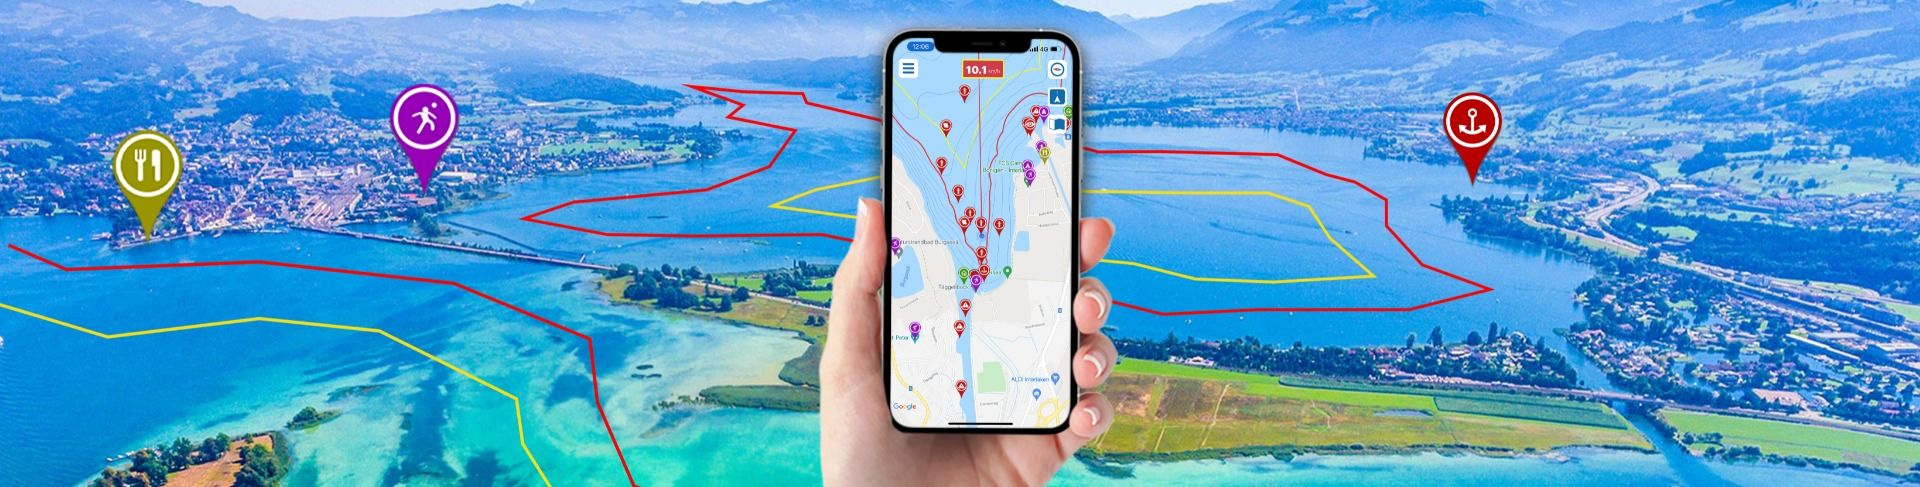 /f/boatdriver-guide-app-lacs-suisses-acces-1-ans-ios-android